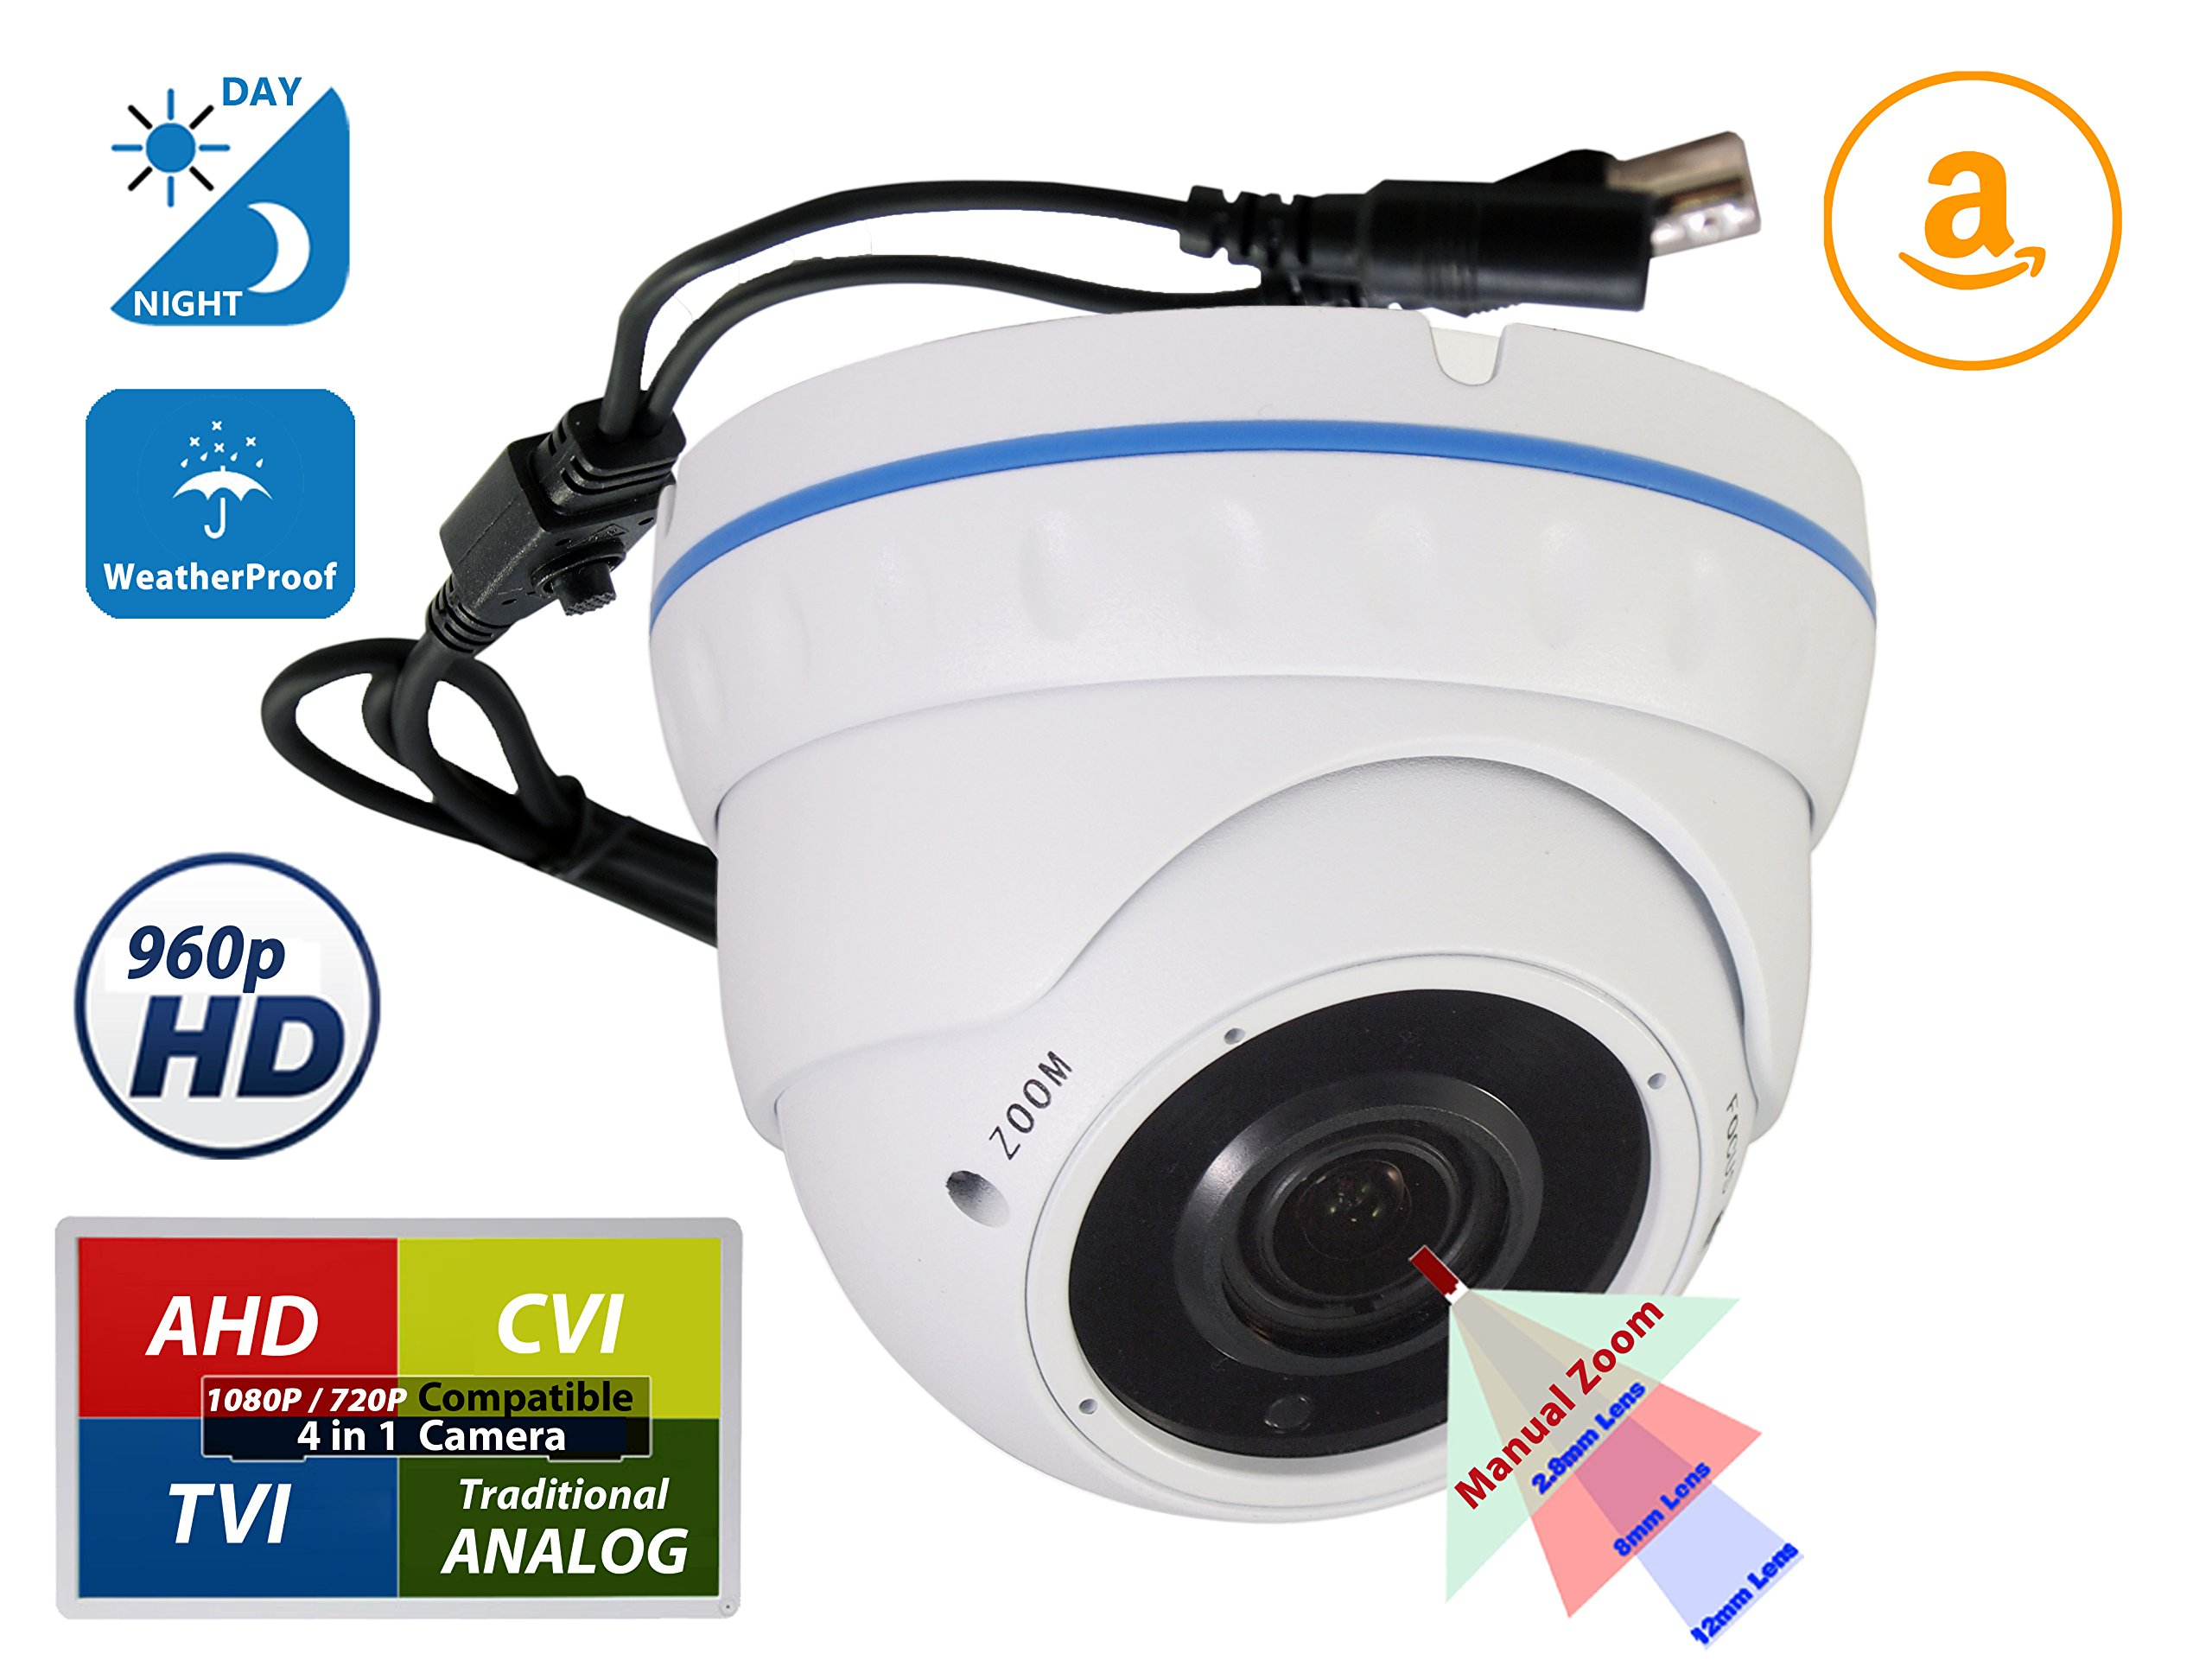 Evertech Varifocal CDM368IRV CCTV Security Camera(White) Day and Night Indoor Outdoor 700 TV Lines, 2.8 - 12 mm Adjustable Zoom Lens